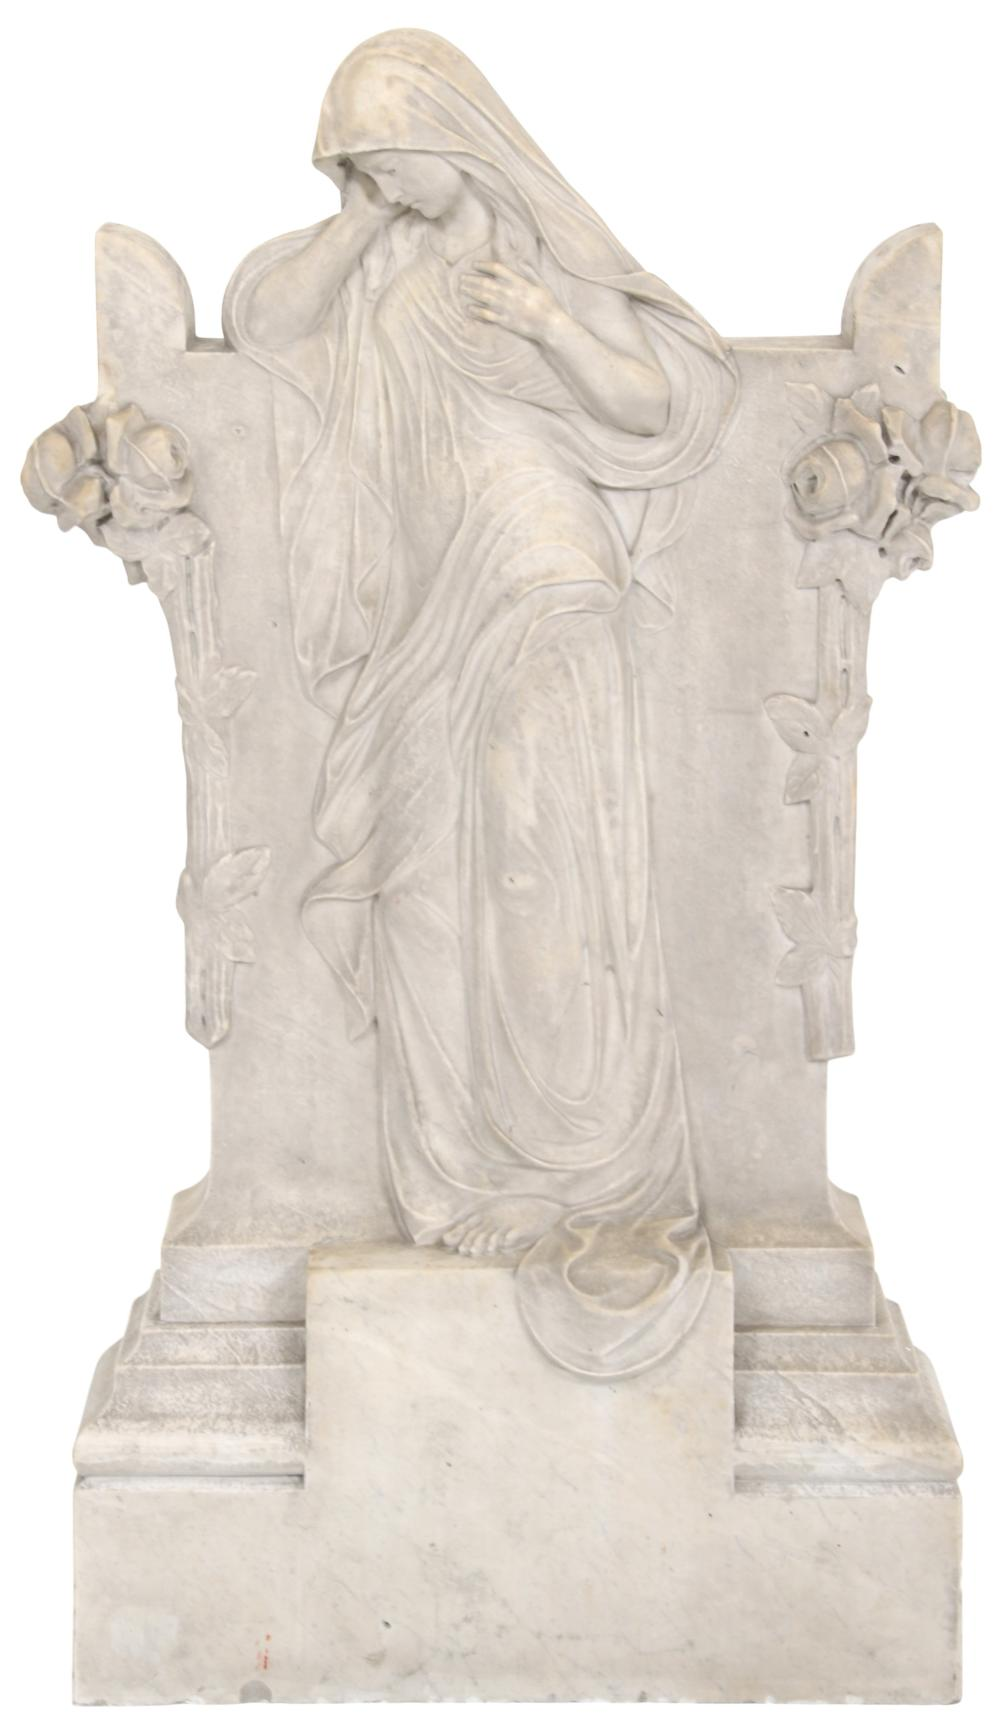 Italian Marble Sculpture of a Woman